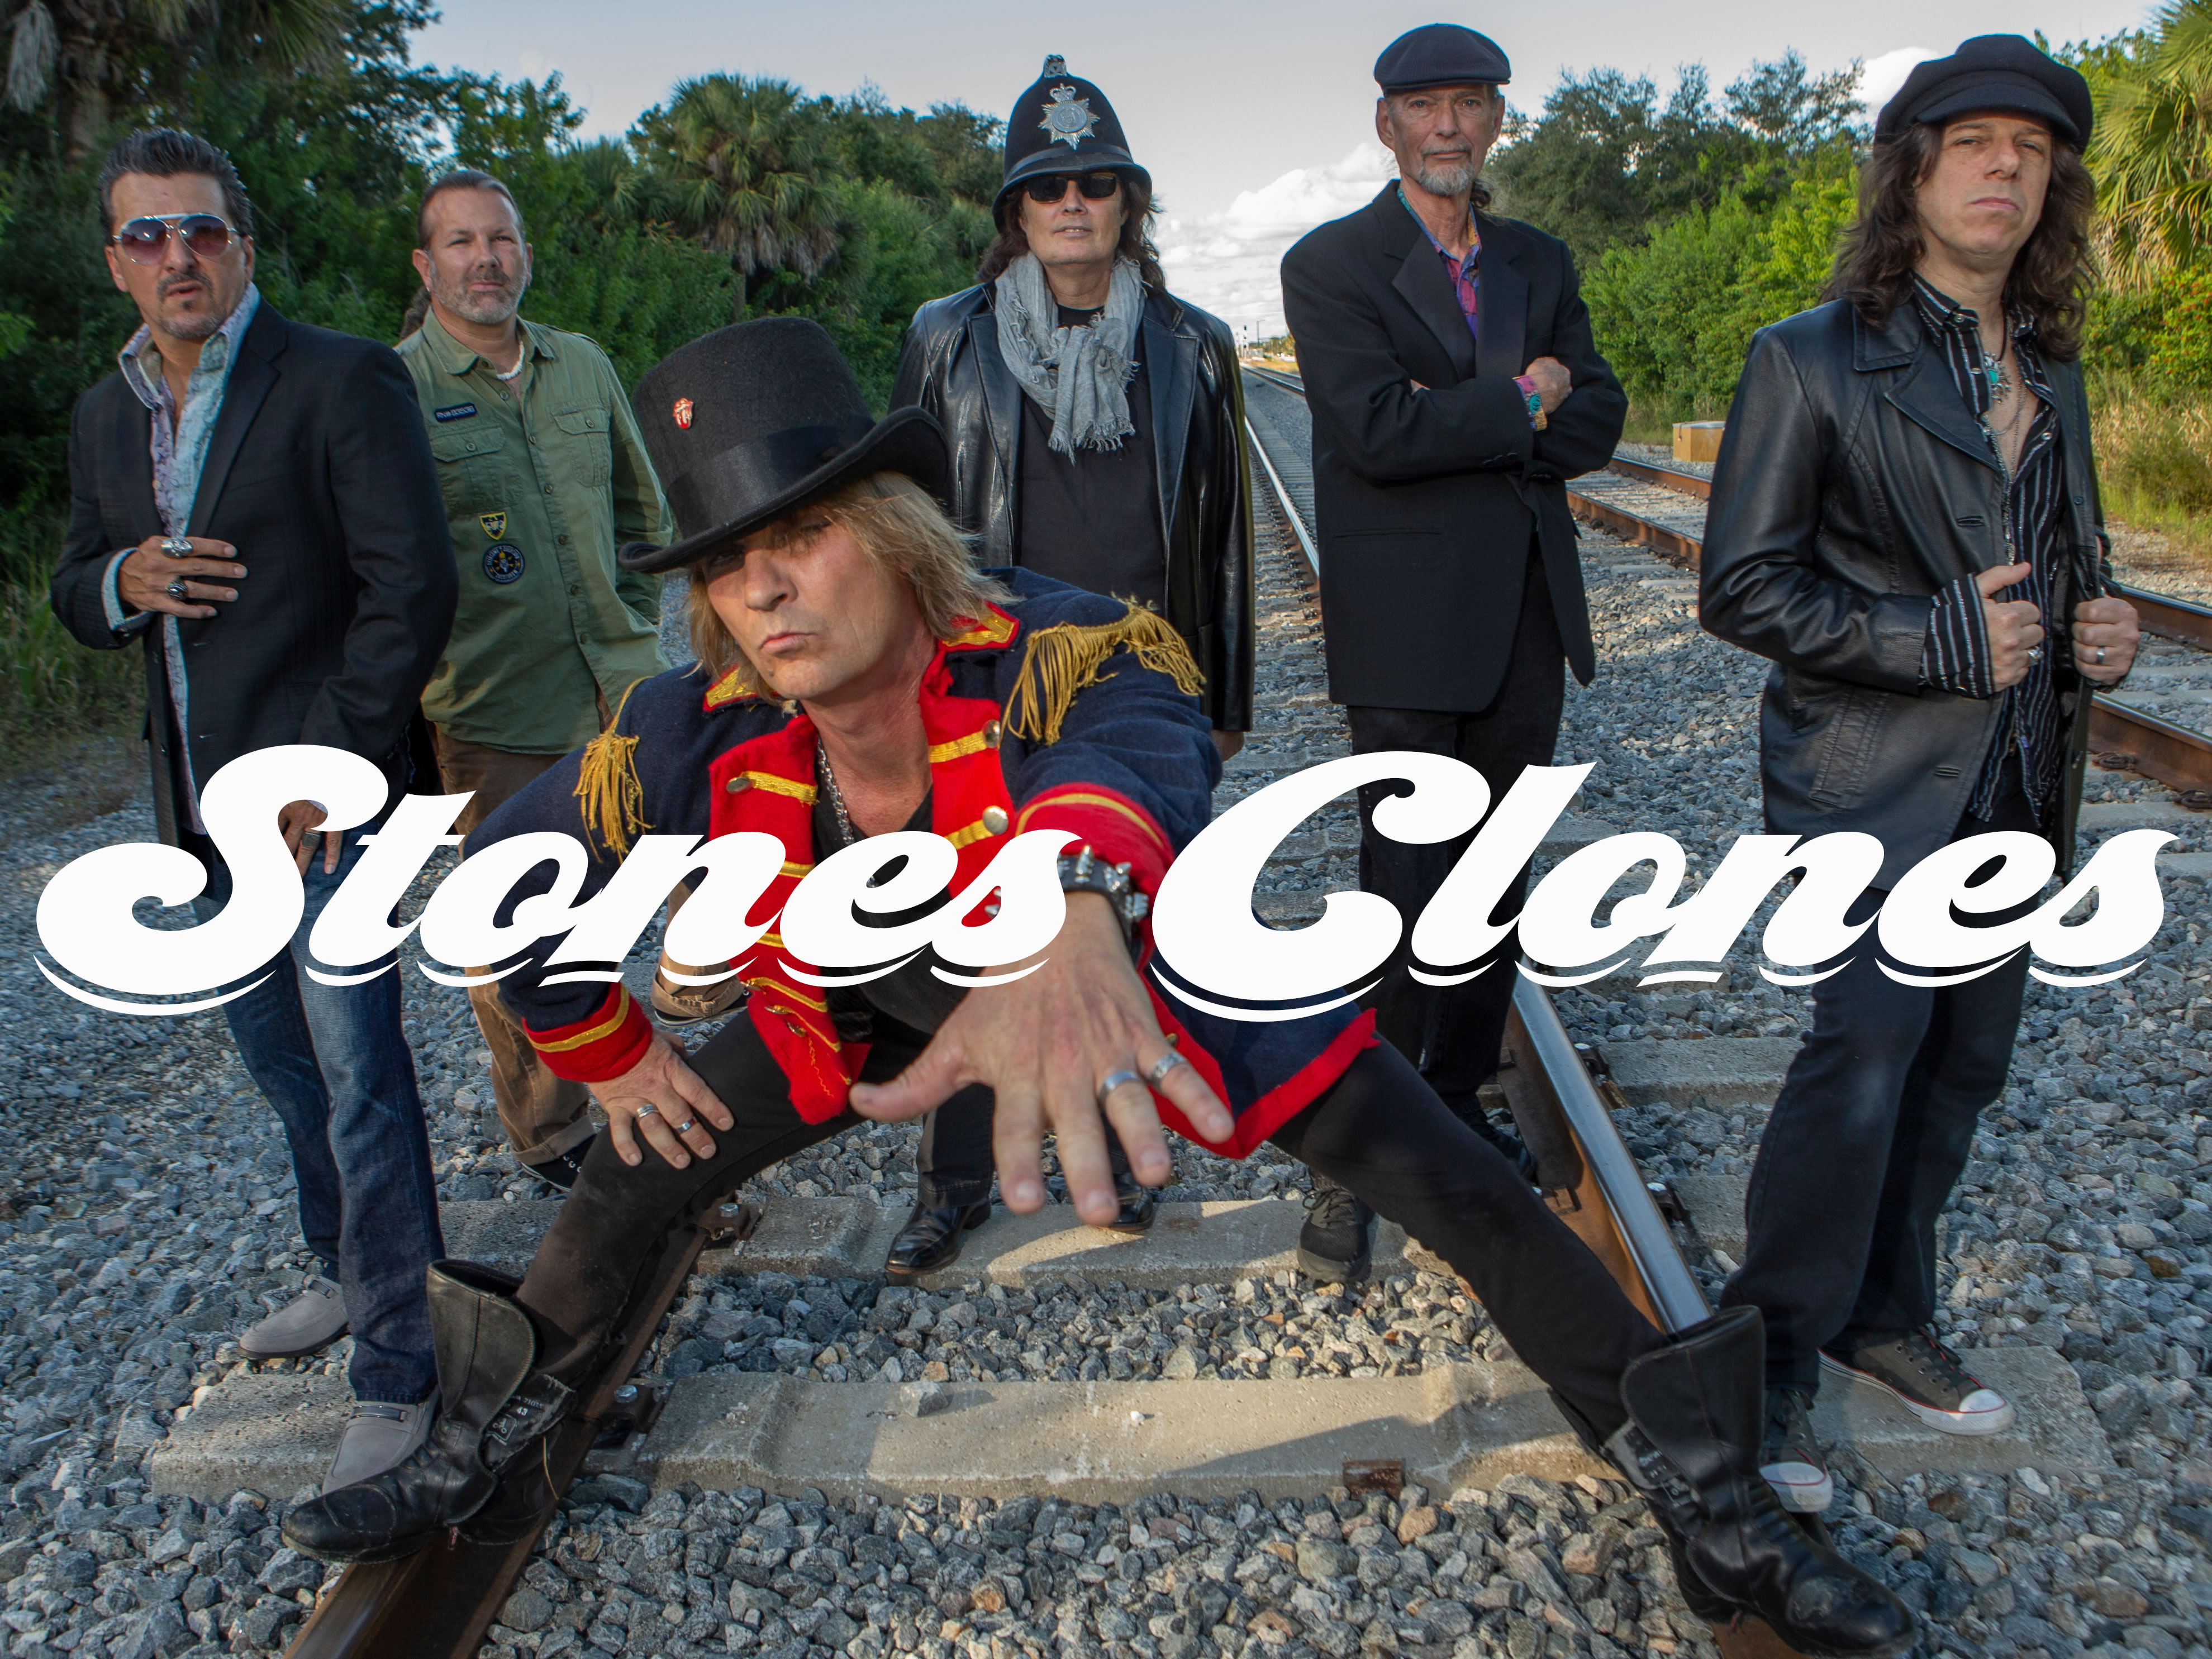 Get Your YaYa's Out - An Evening With Stones Clones